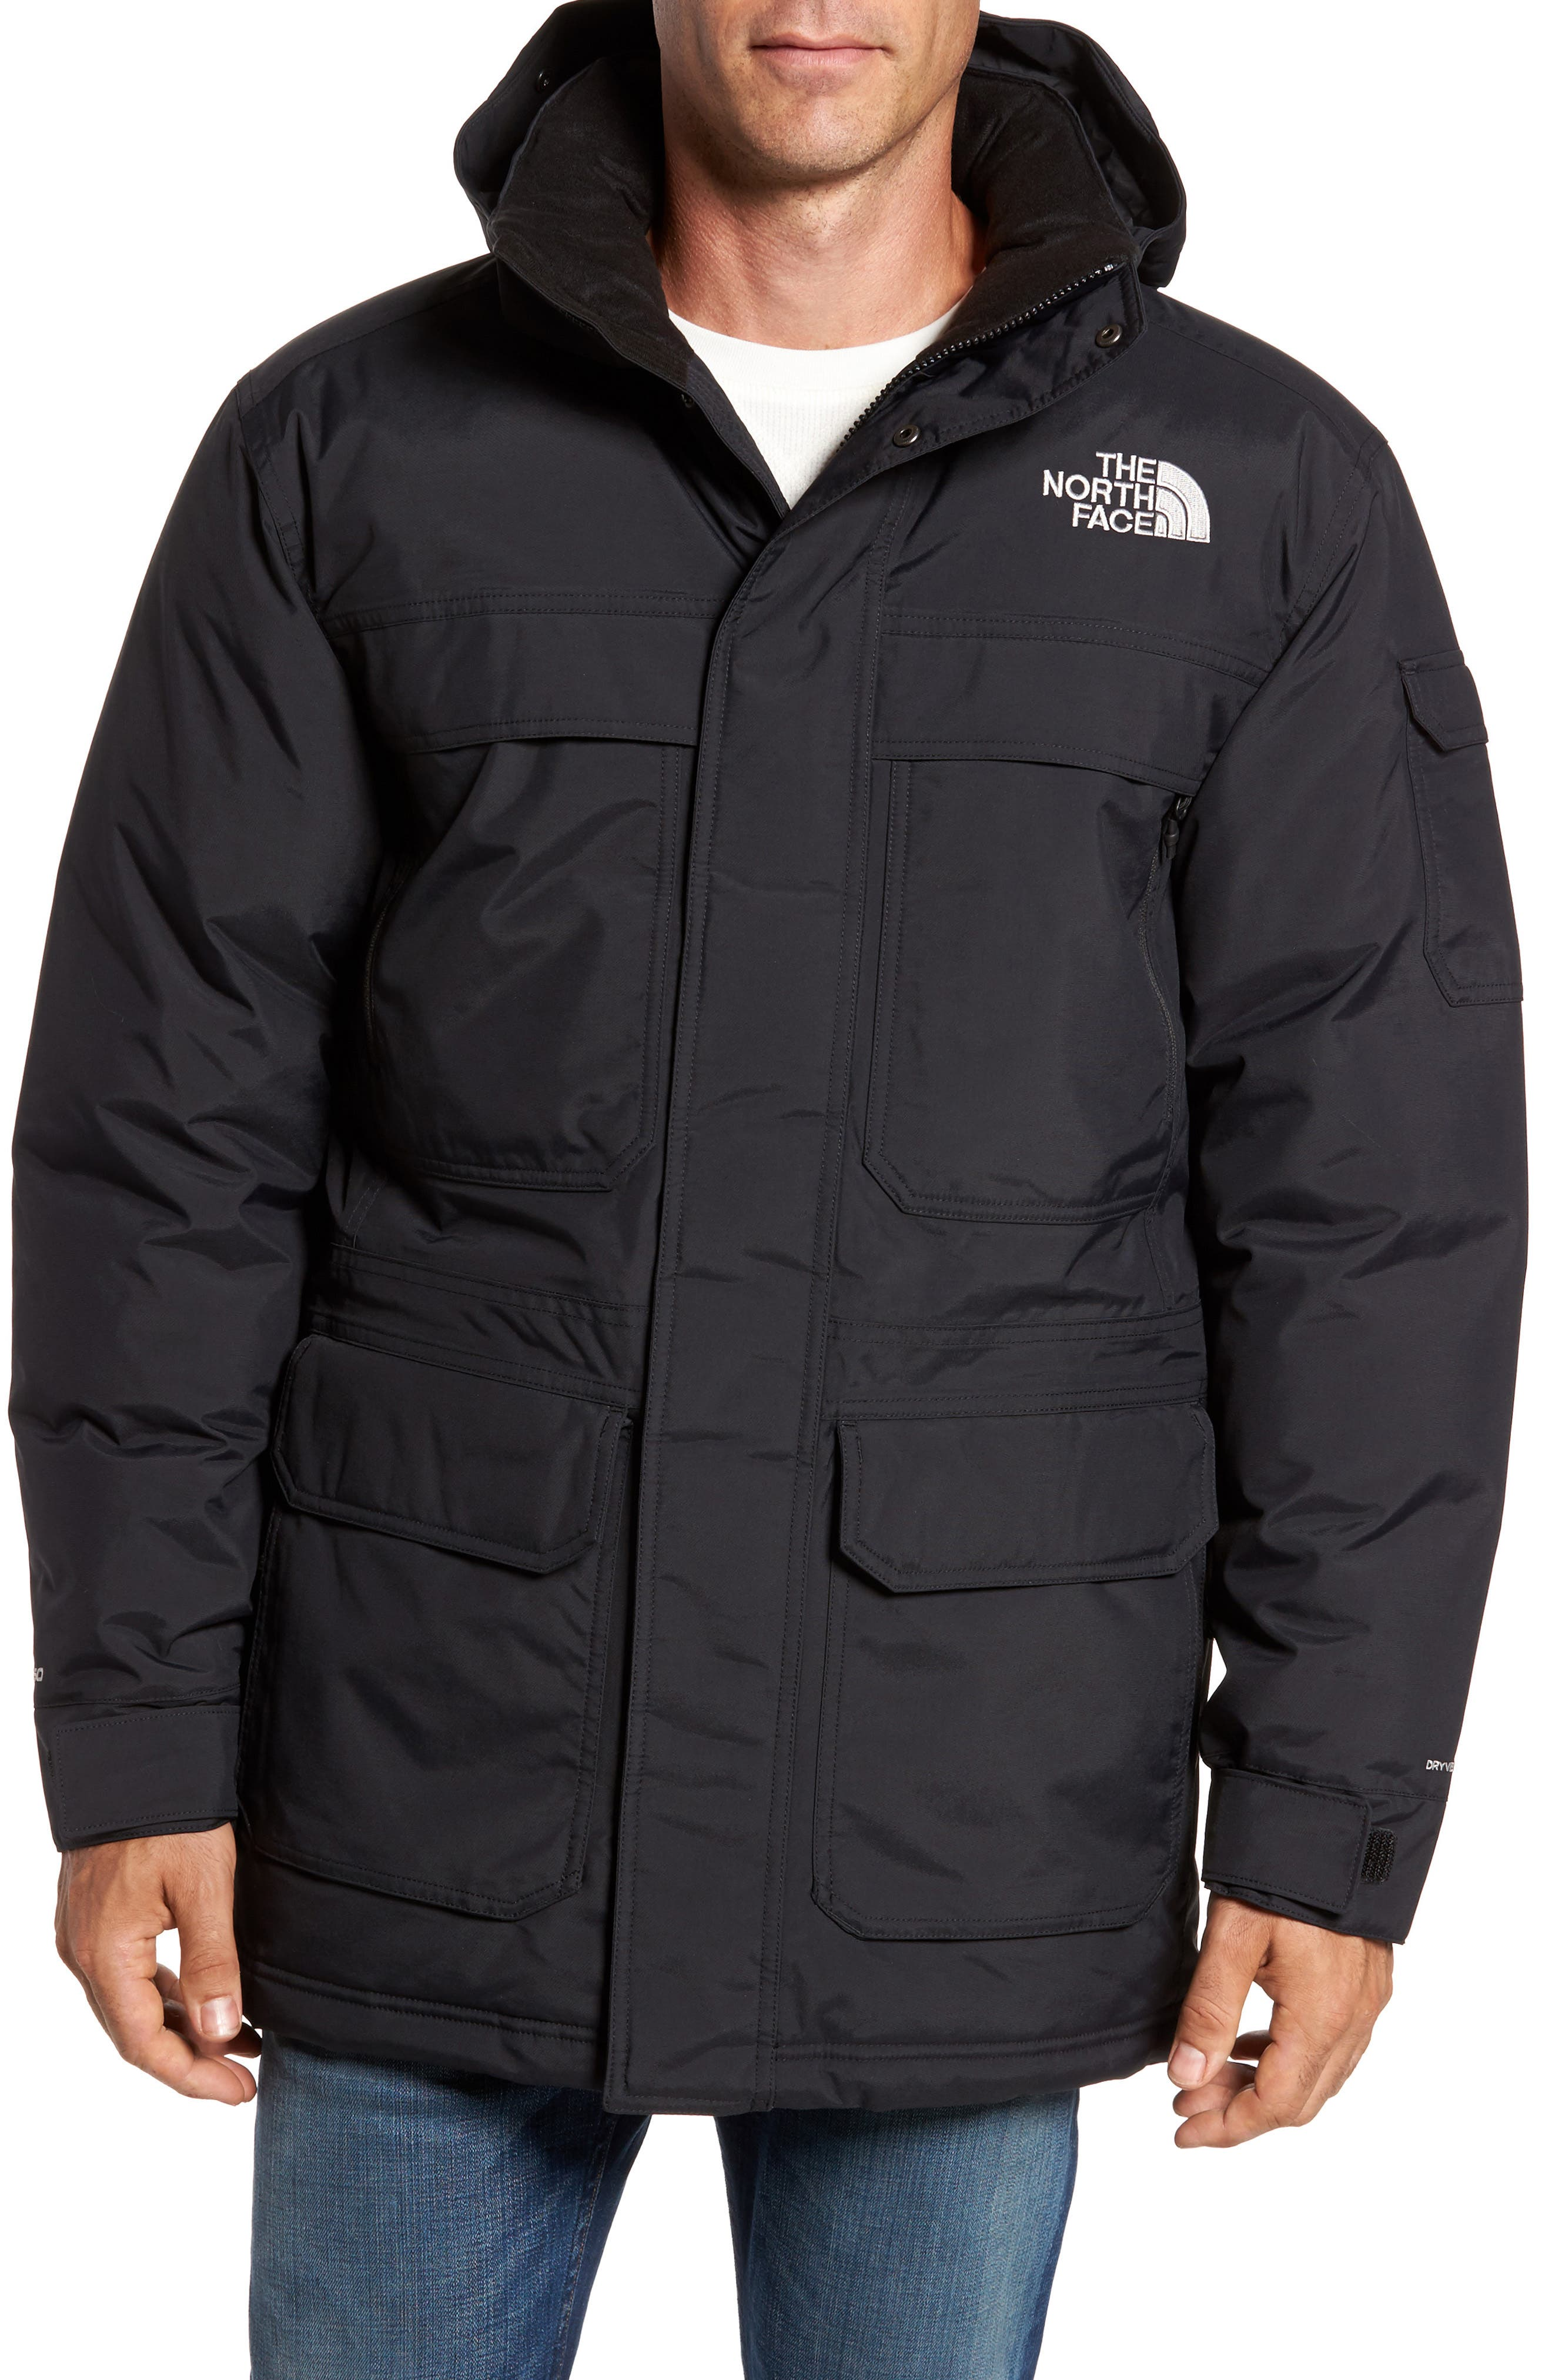 THE NORTH FACE,                             McMurdo III Waterproof Parka,                             Alternate thumbnail 4, color,                             001